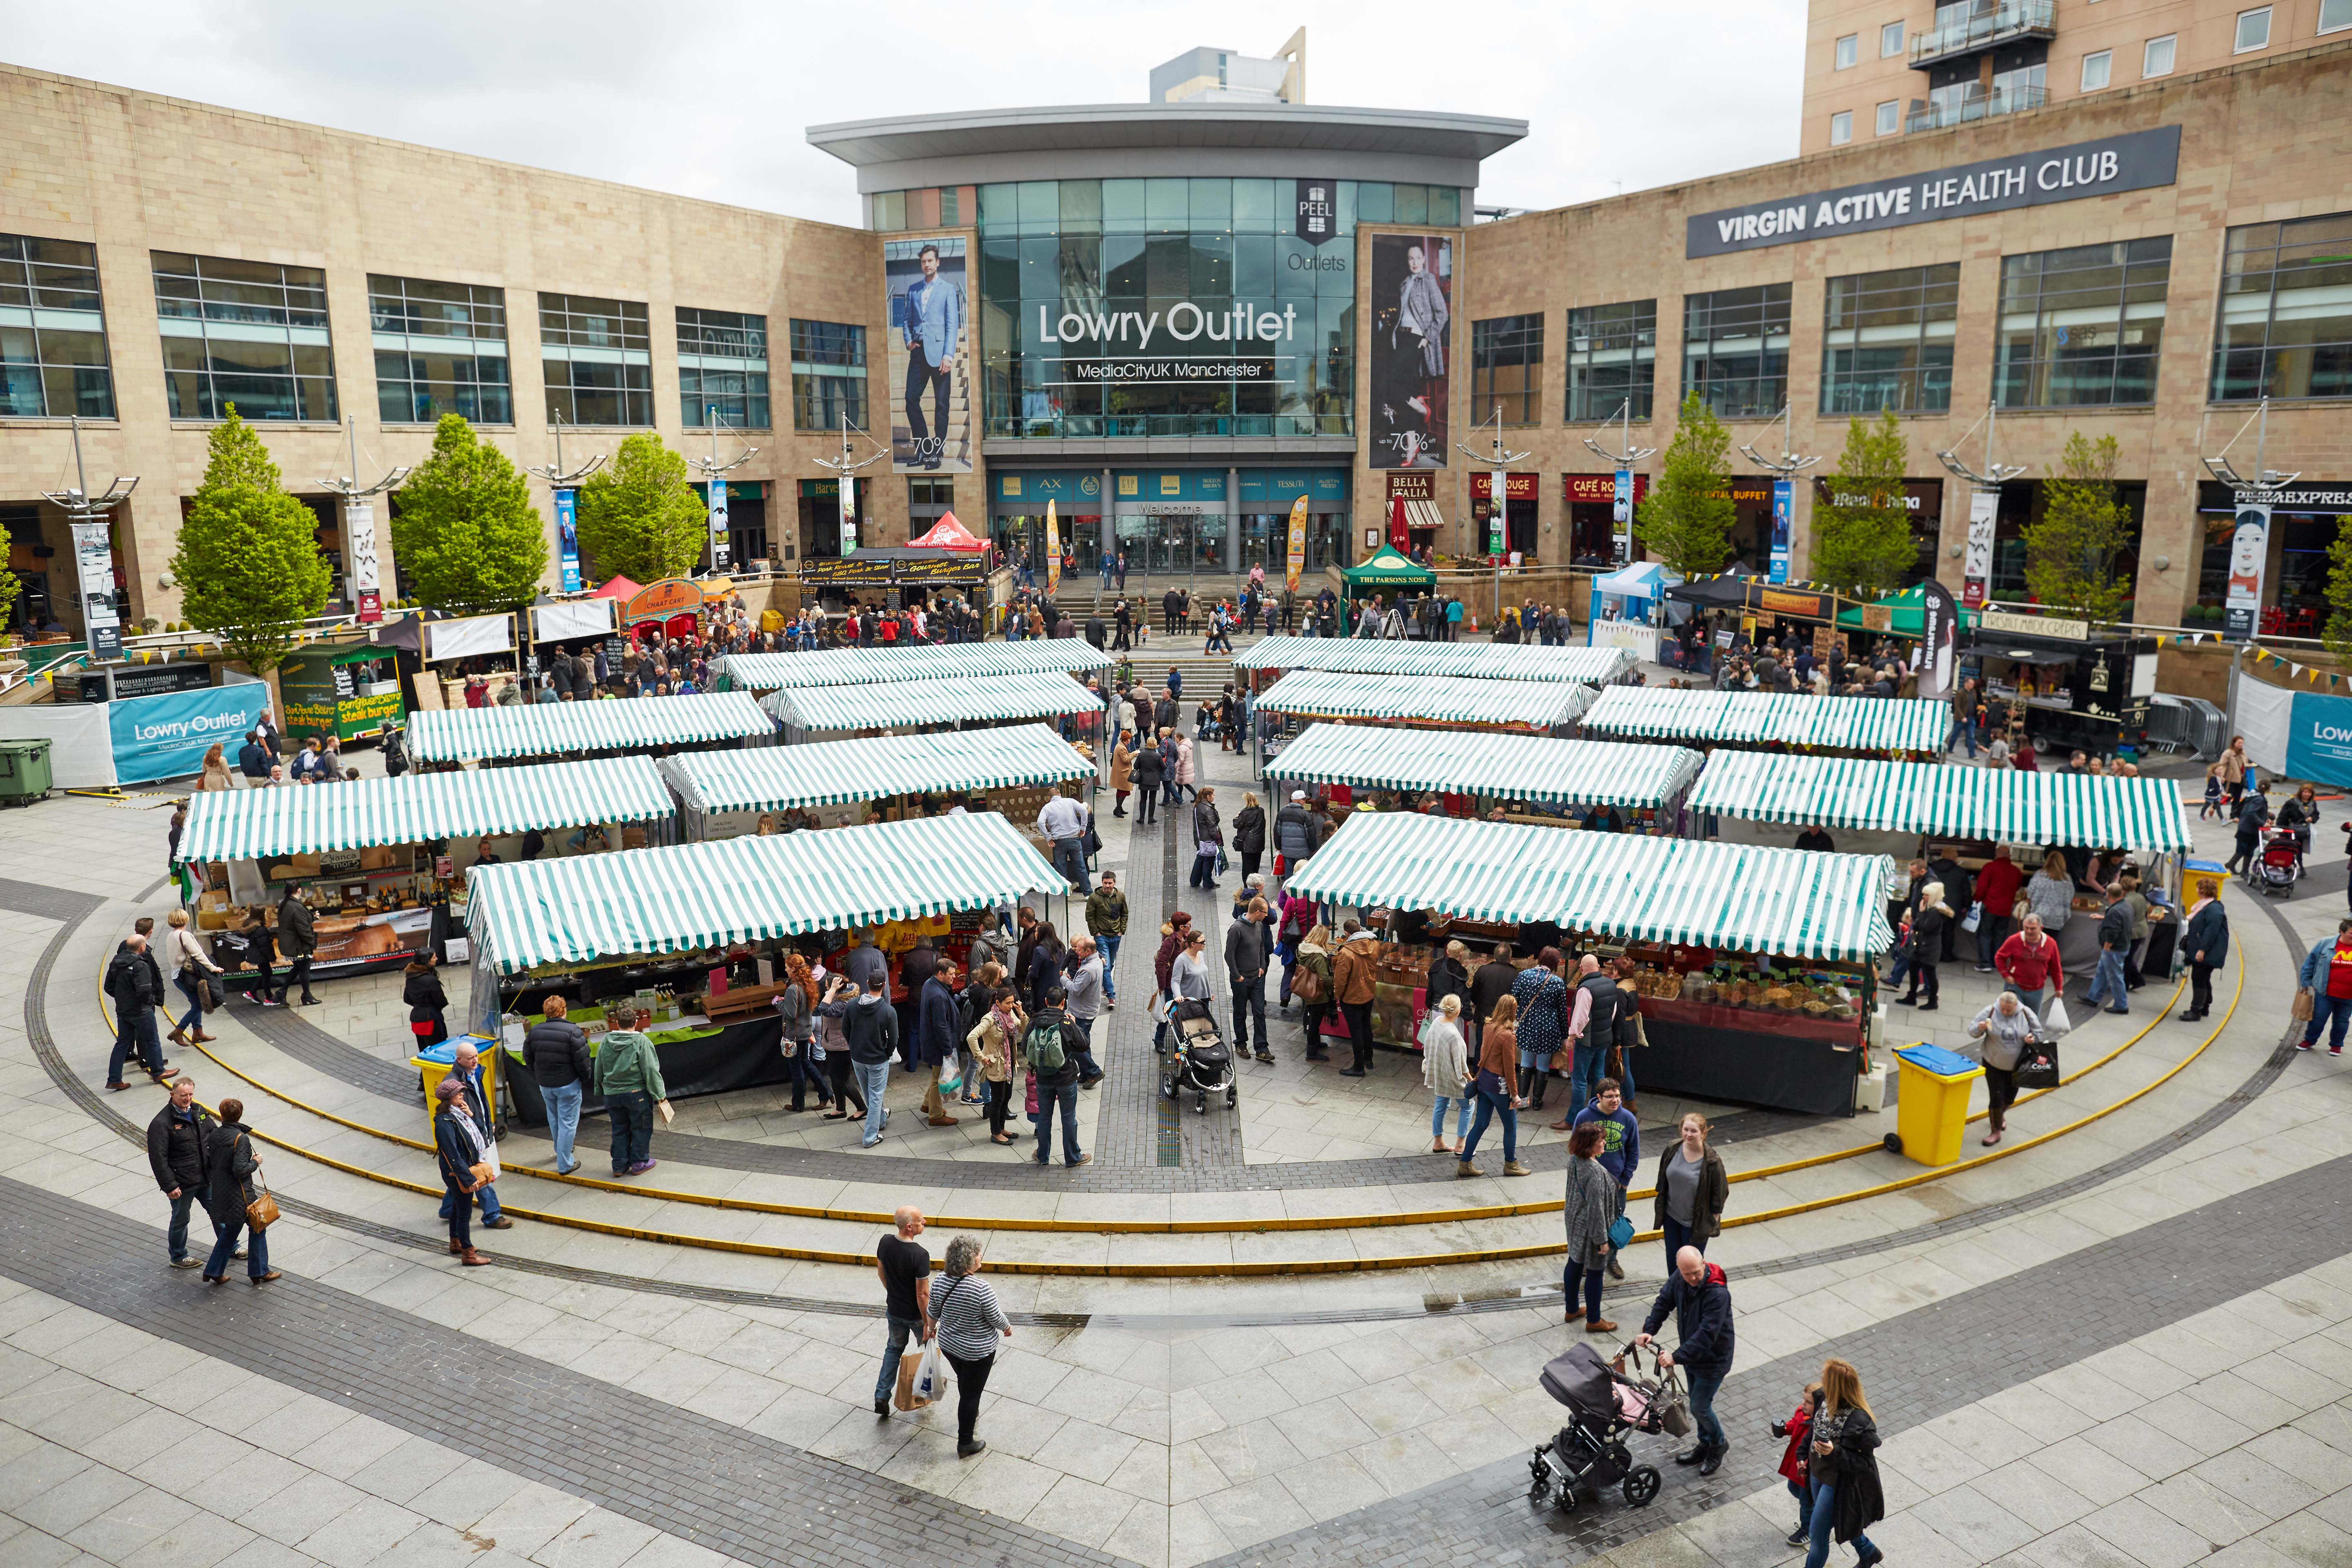 Waterside Market: 10th - 11th Oct